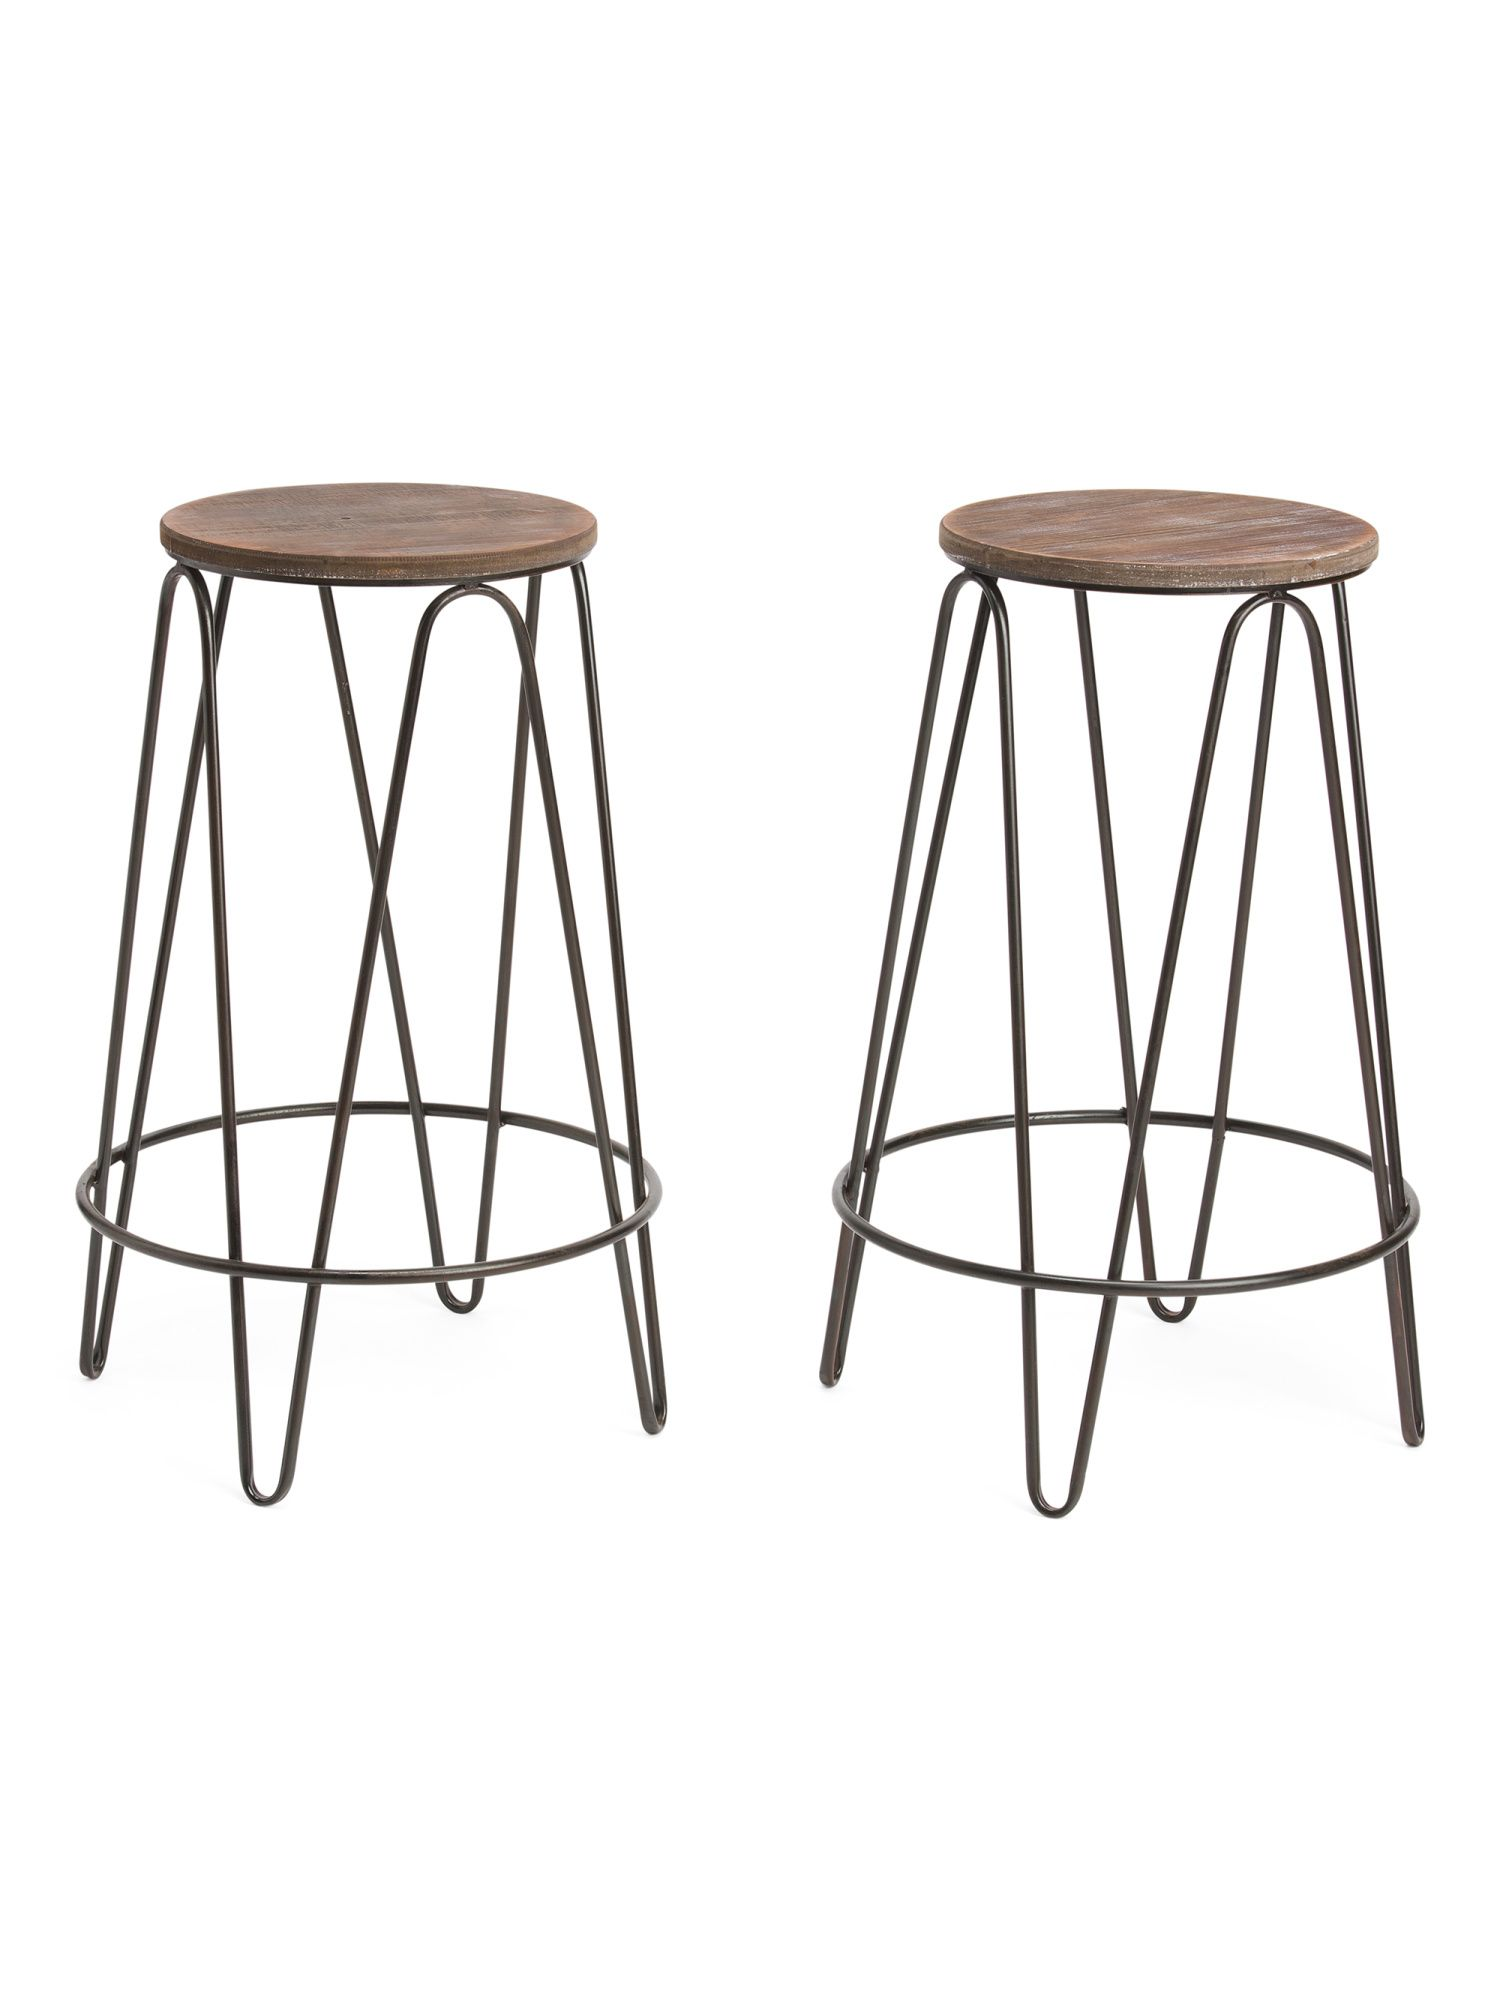 Sets Of 2 Round Bar Stools Round Bar Stools Bar Stools Cool Bar Stools